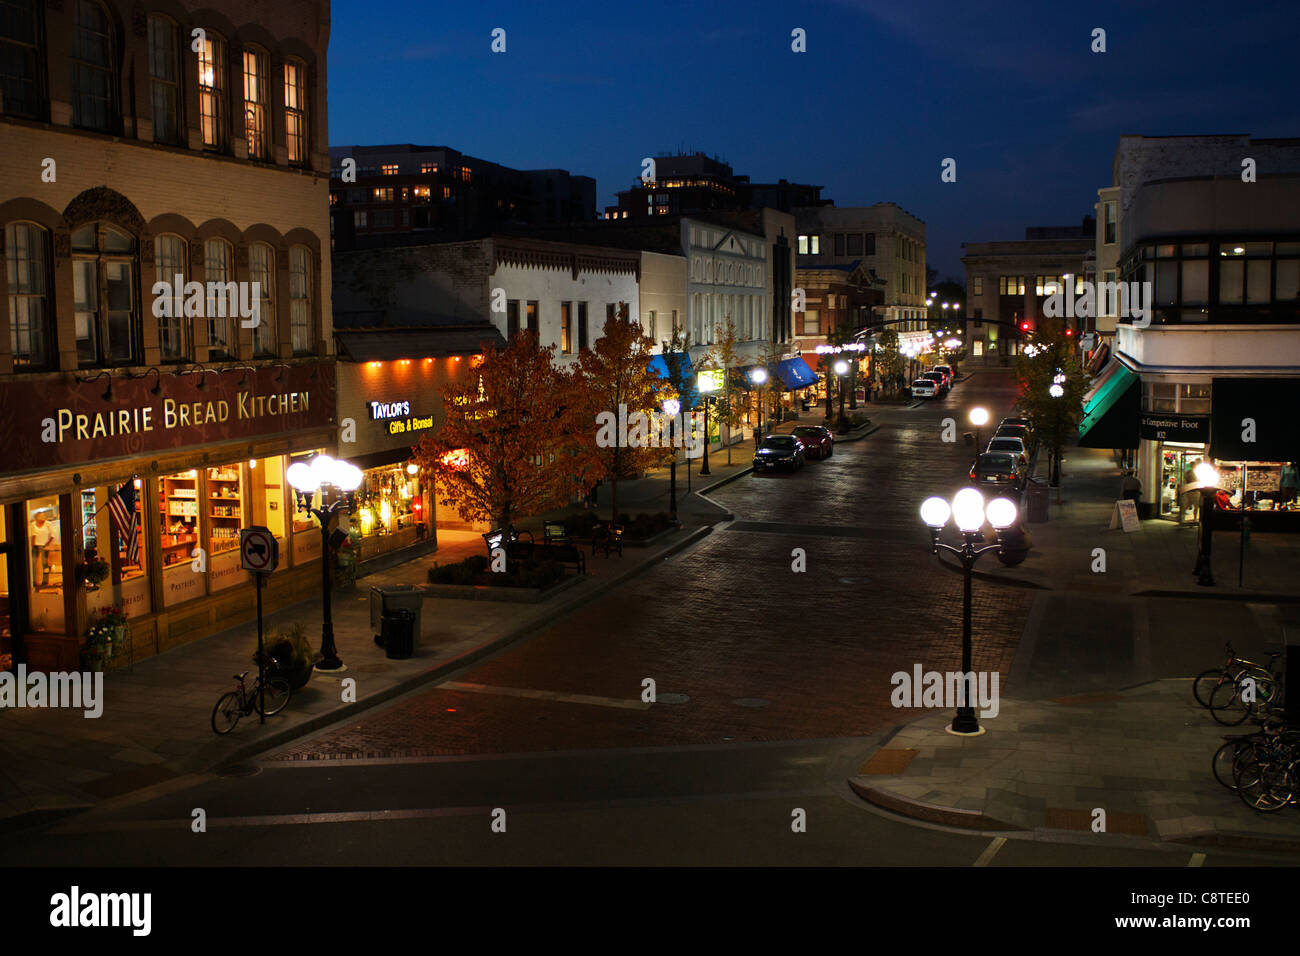 Evening_on_Marion_Street_and_Downtown_Oa